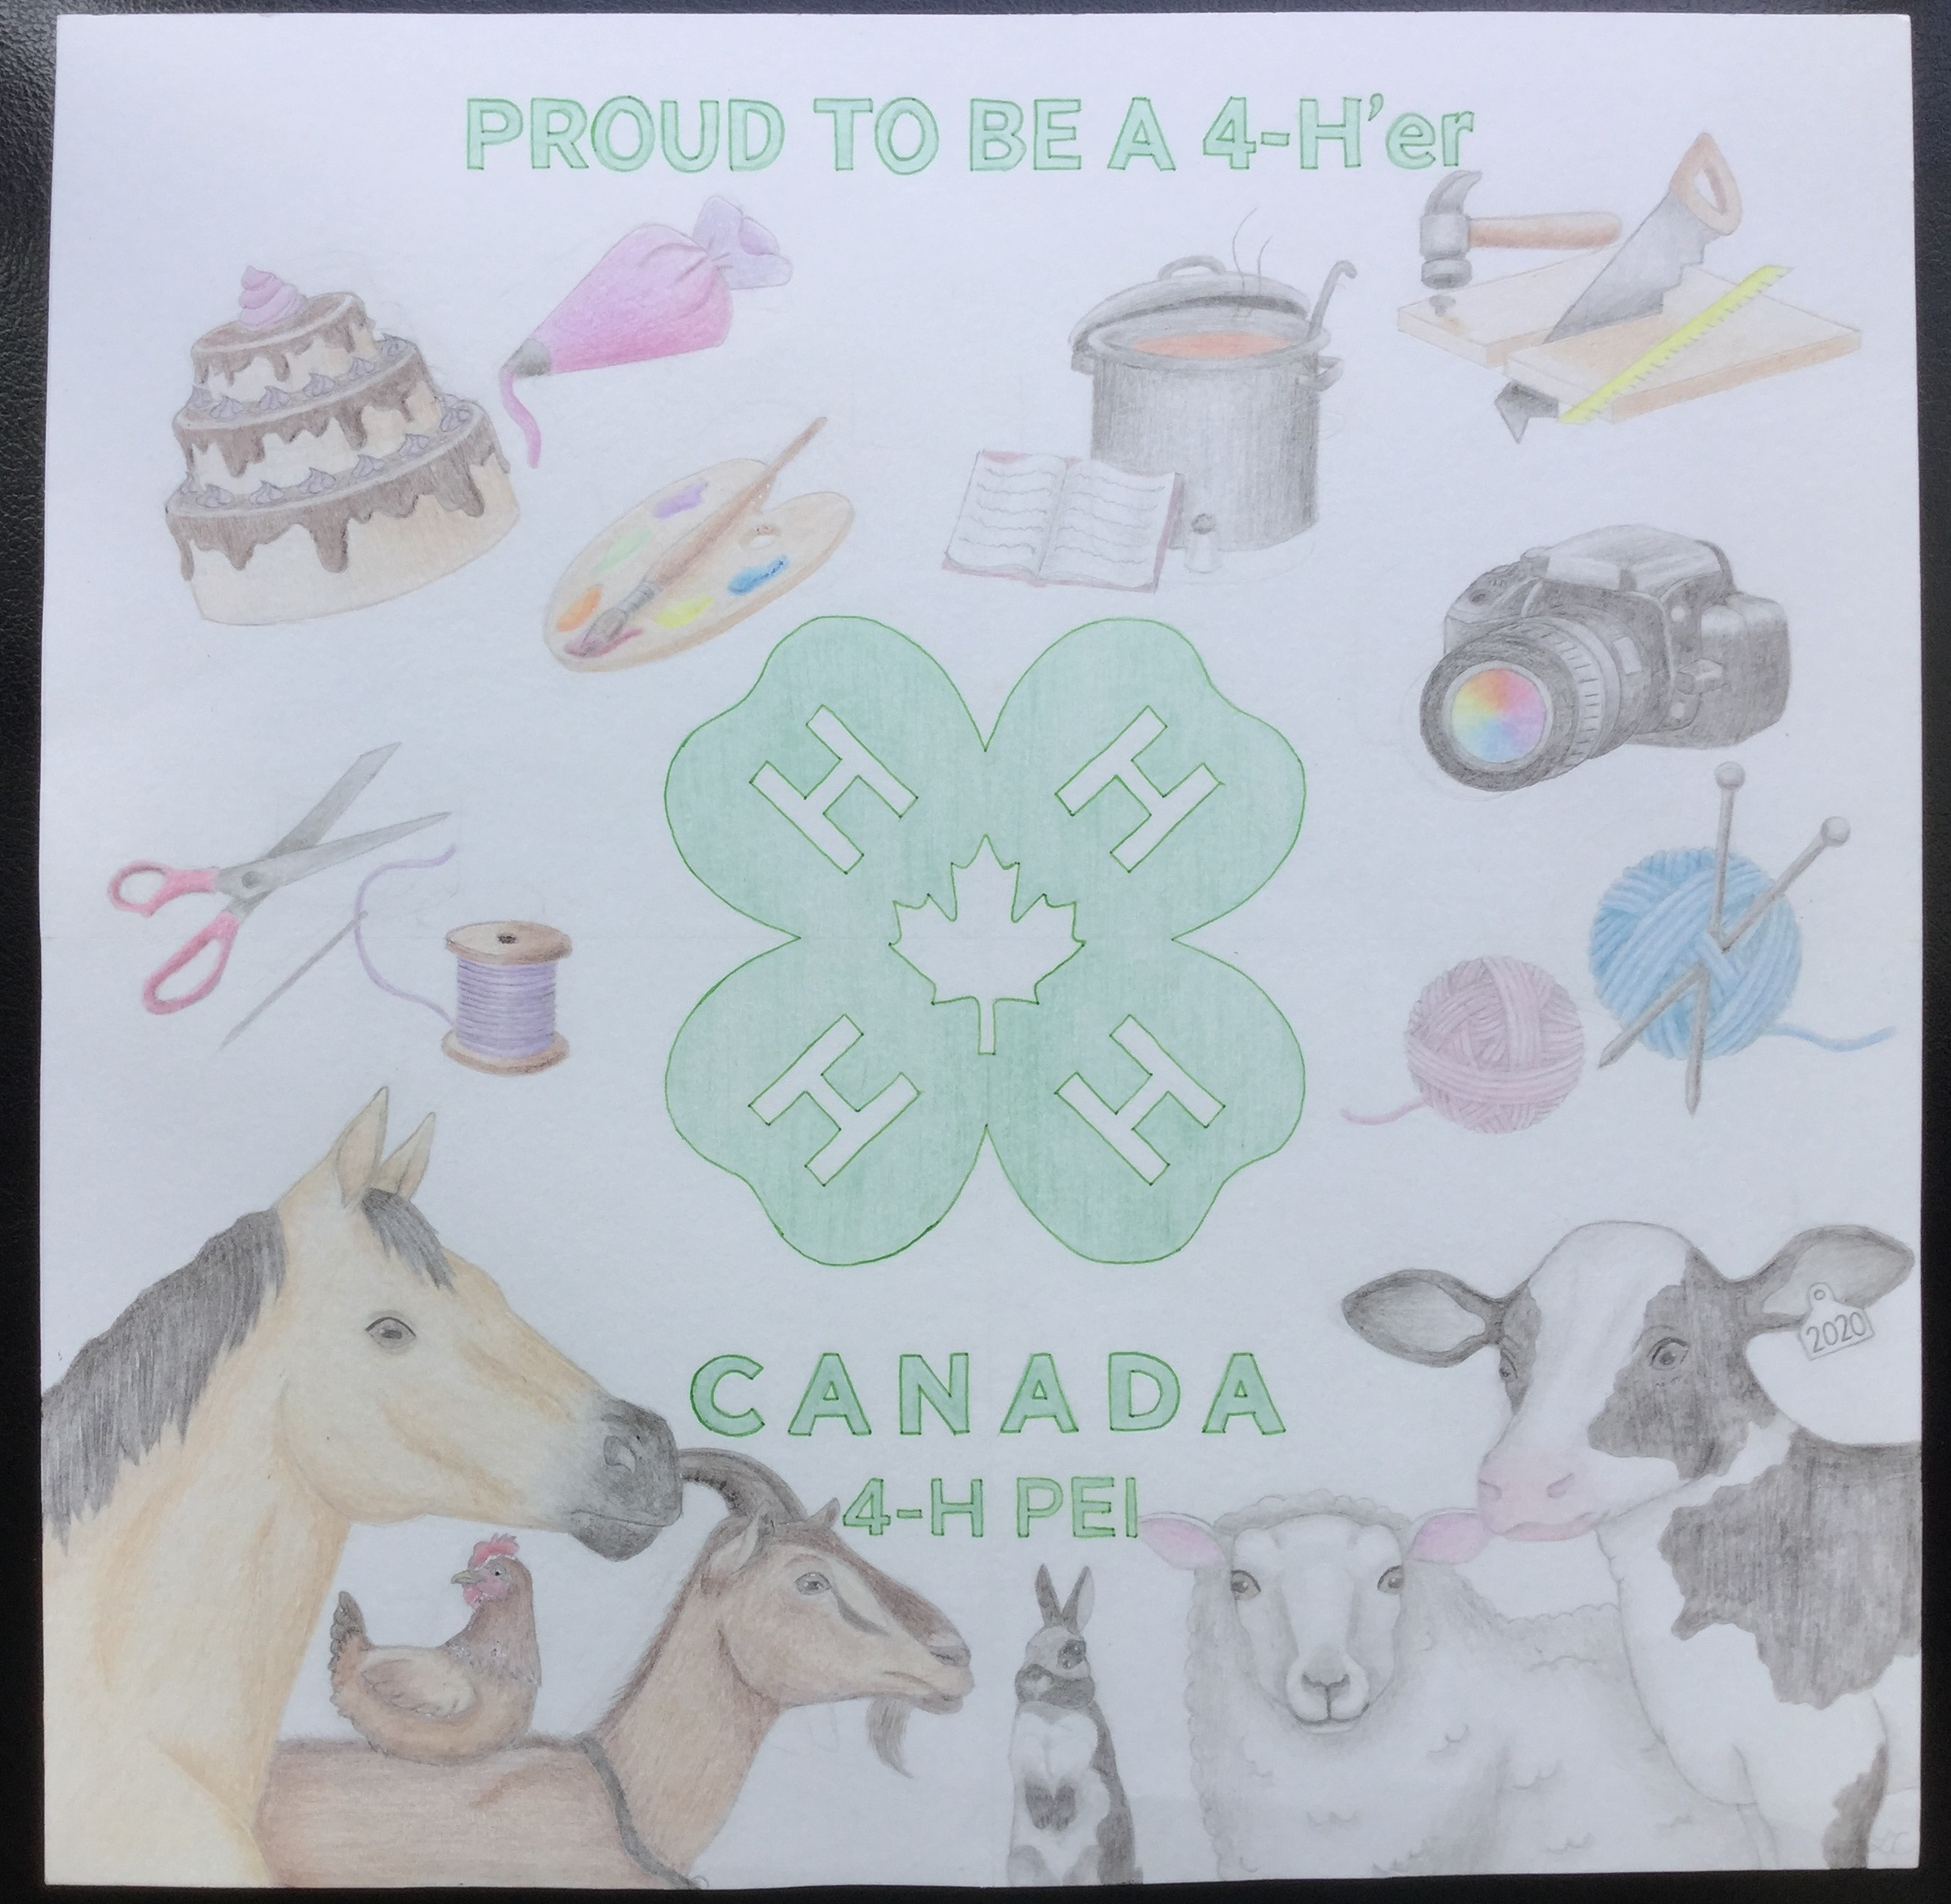 Lauryn Craswell, Cavendish 4-H Club